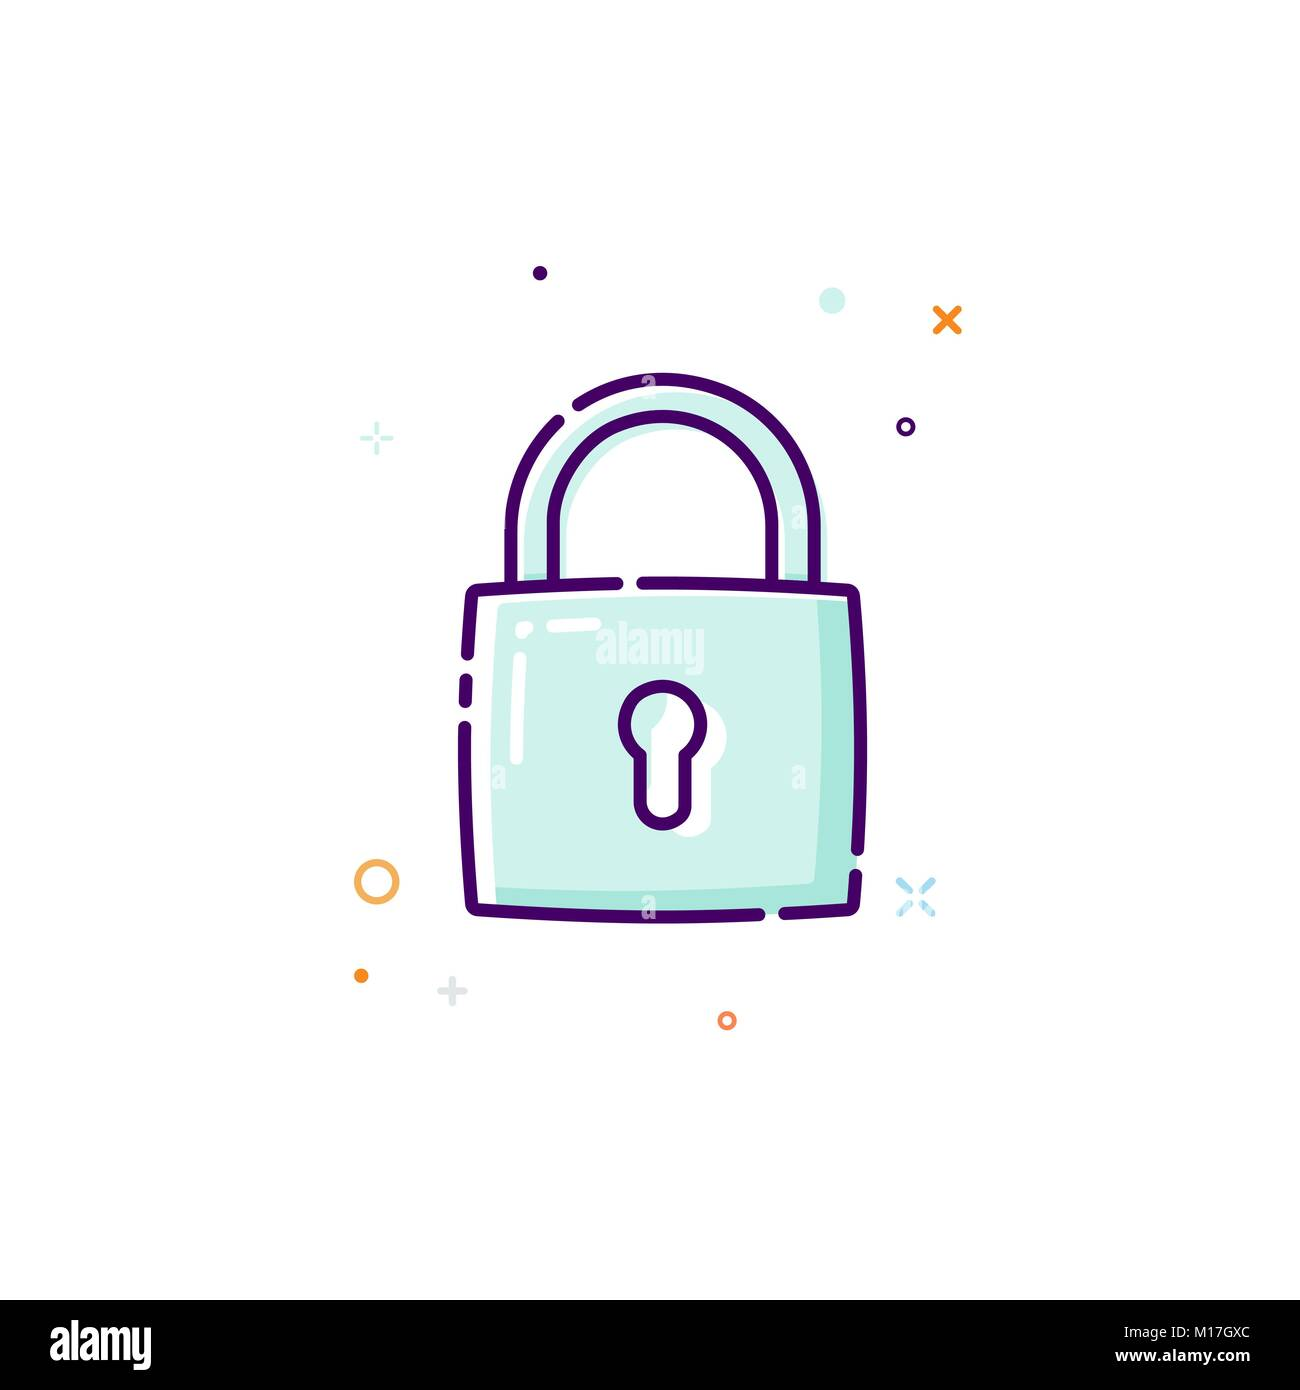 Padlock icon. Thin line flat design icon concept. Protection of personal information. Vector illustration - Stock Image